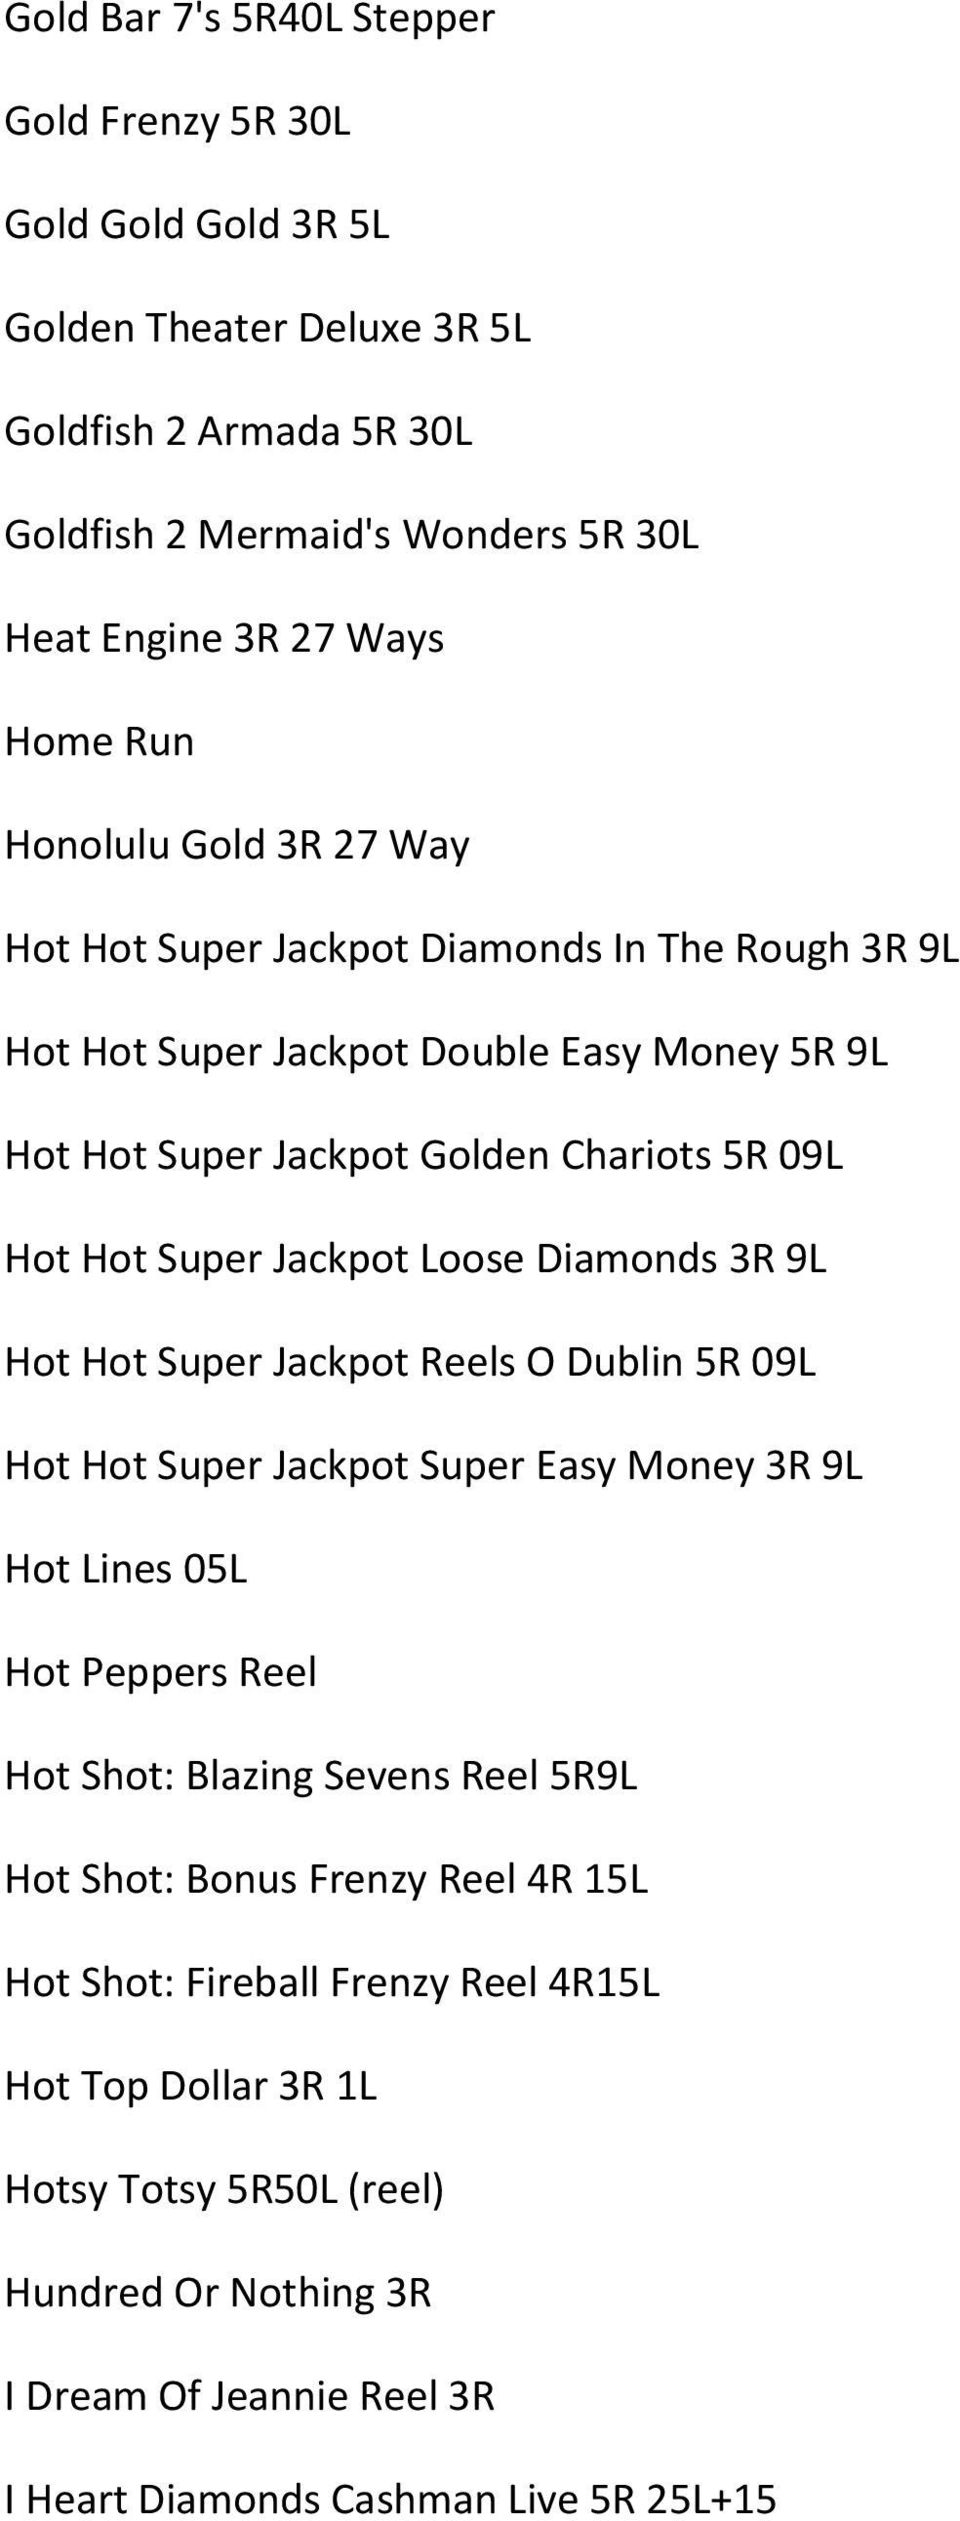 Loose Diamonds 3R 9L Hot Hot Super Jackpot Reels O Dublin 5R 09L Hot Hot Super Jackpot Super Easy Money 3R 9L Hot Lines 05L Hot Peppers Reel Hot Shot: Blazing Sevens Reel 5R9L Hot Shot: